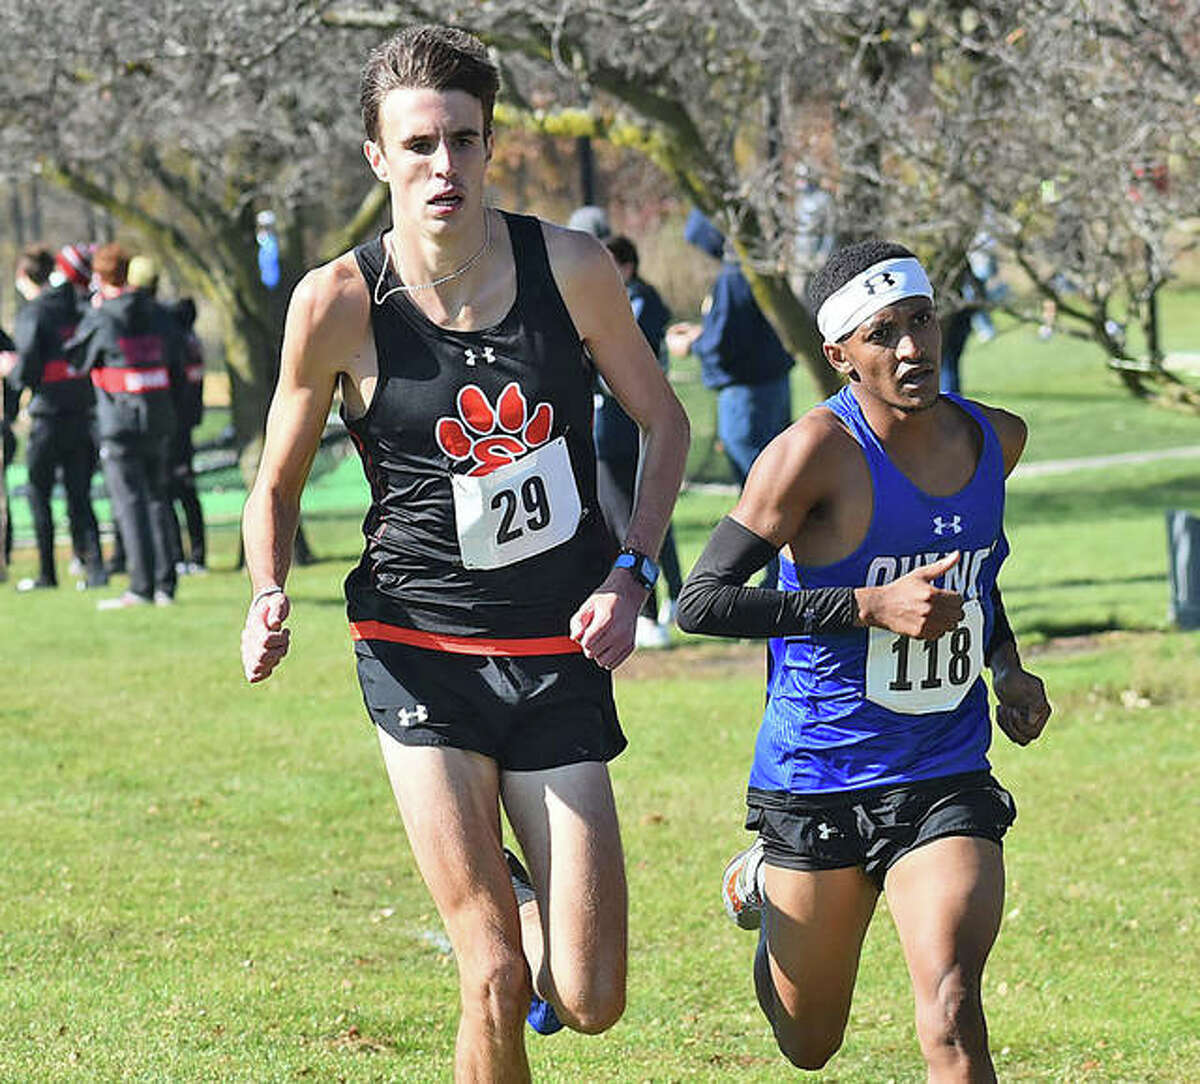 Edwardsville's 6-foot-5 junior Ryan Watts (left) and Quincy's 5-6 junior Fiker Rosen run together during the Normal Class 3A Sectional on Saturday at Maxwell Park in Normal. Watts won the race, with Rosen in second.